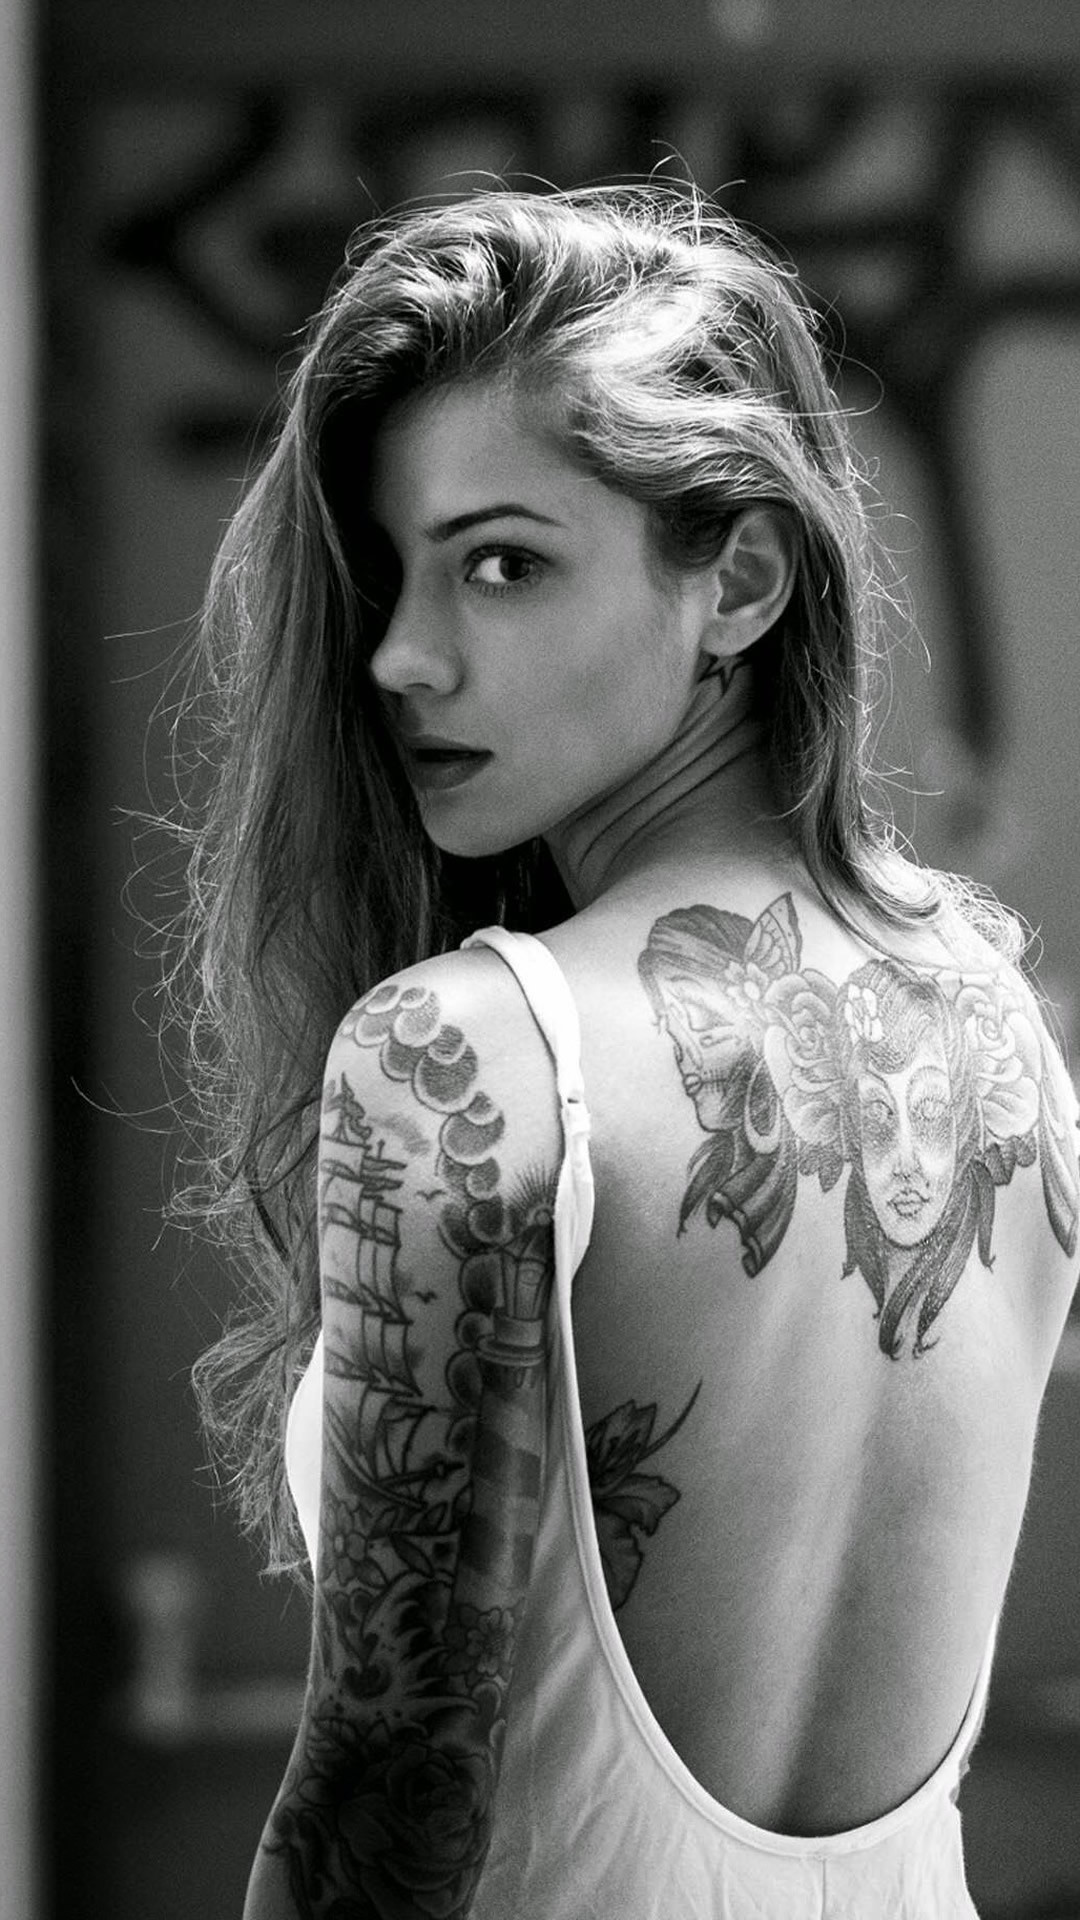 wallpaper iphone girl: Badass Chick Wallpapers (76+ Images